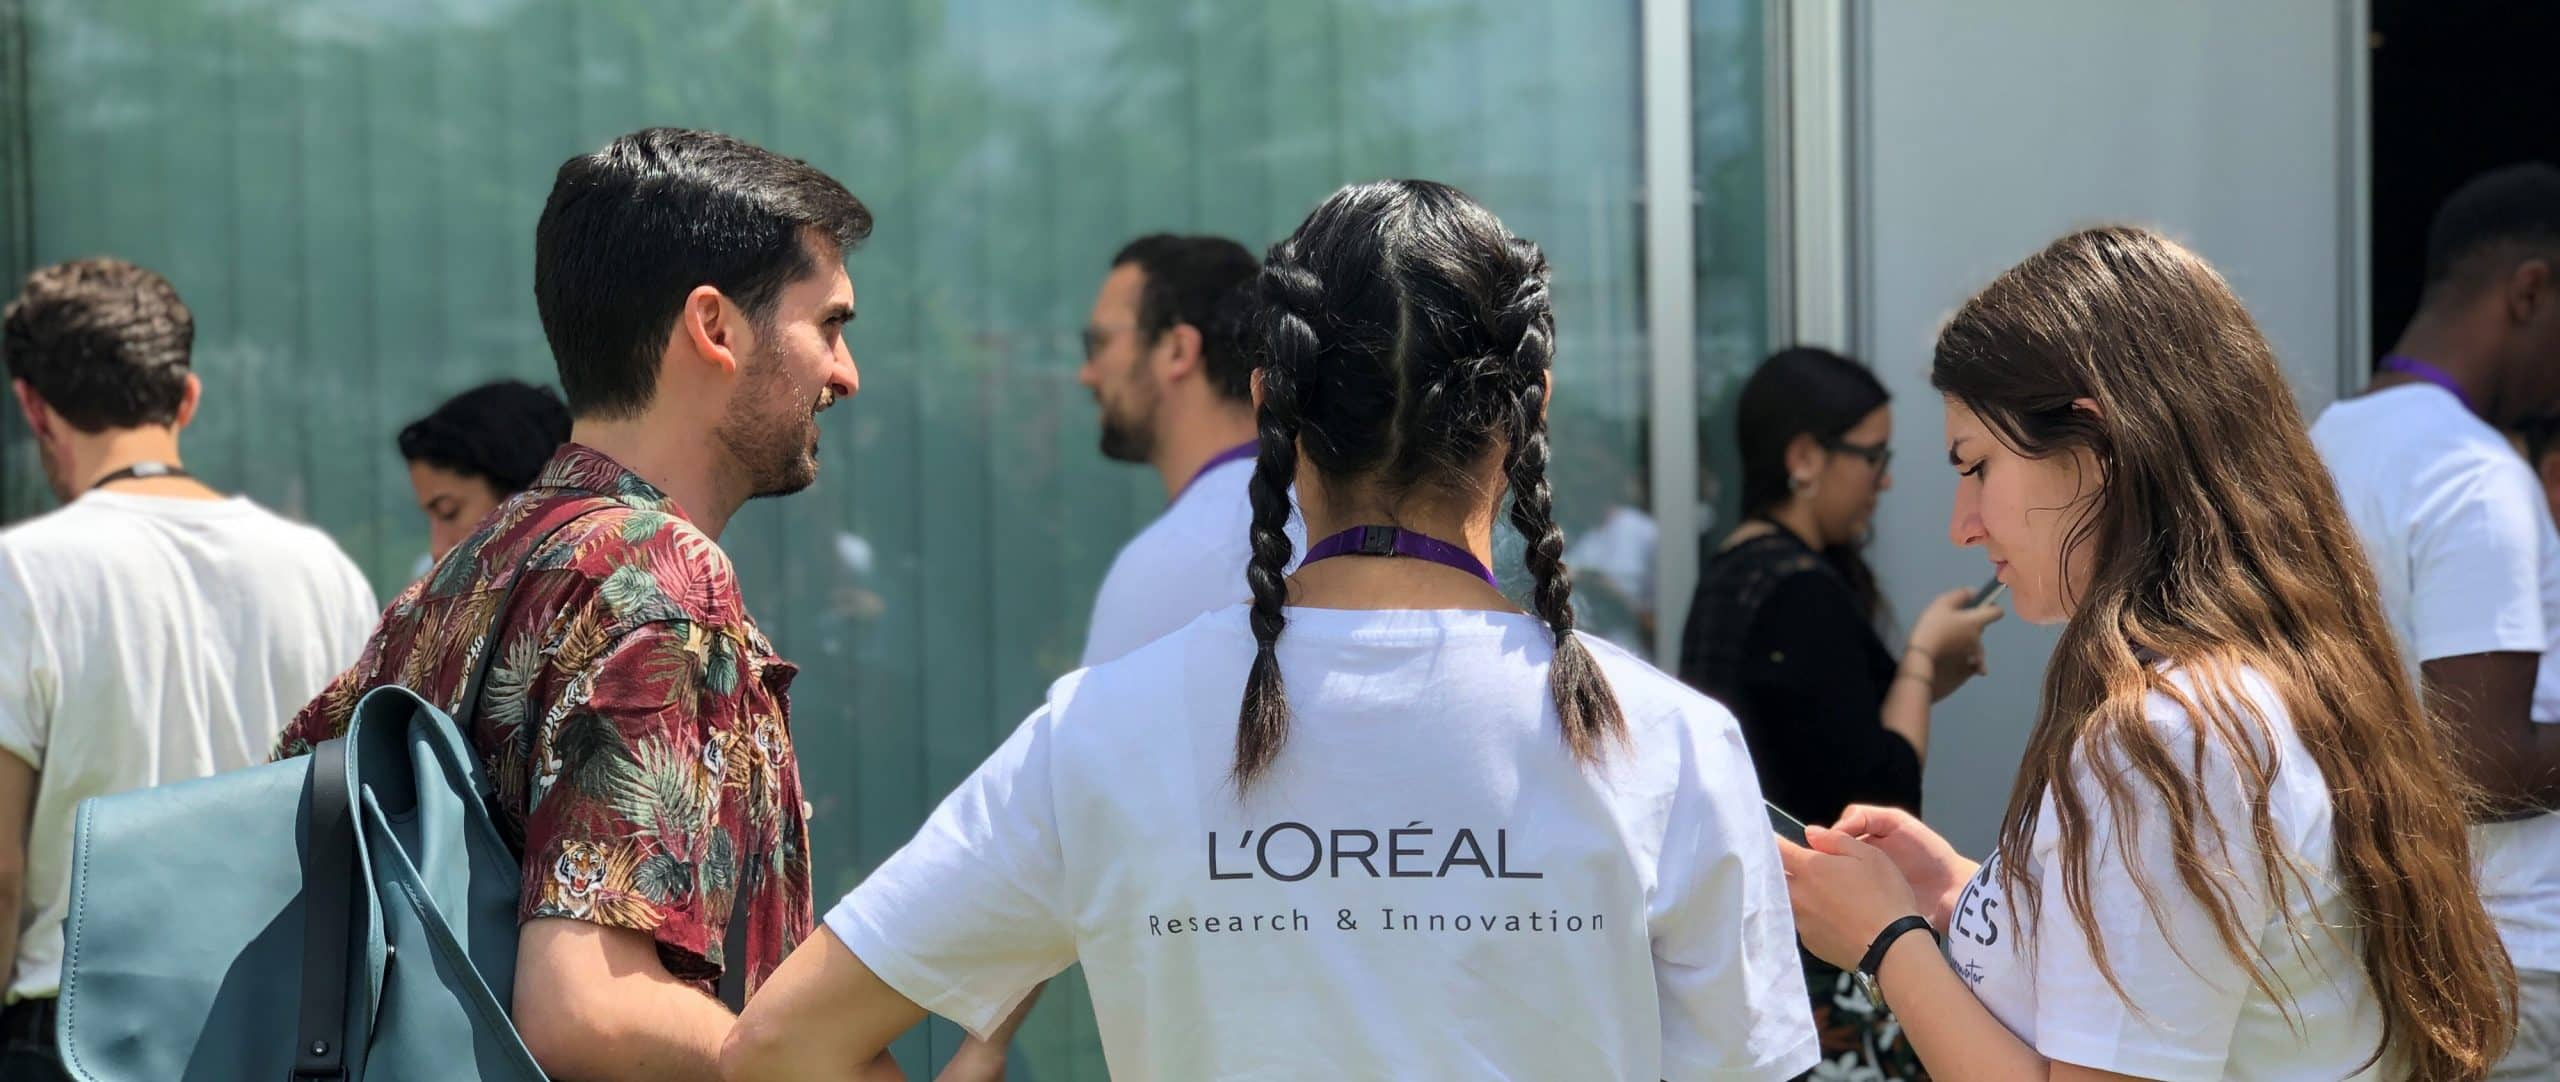 What is L'oreal?